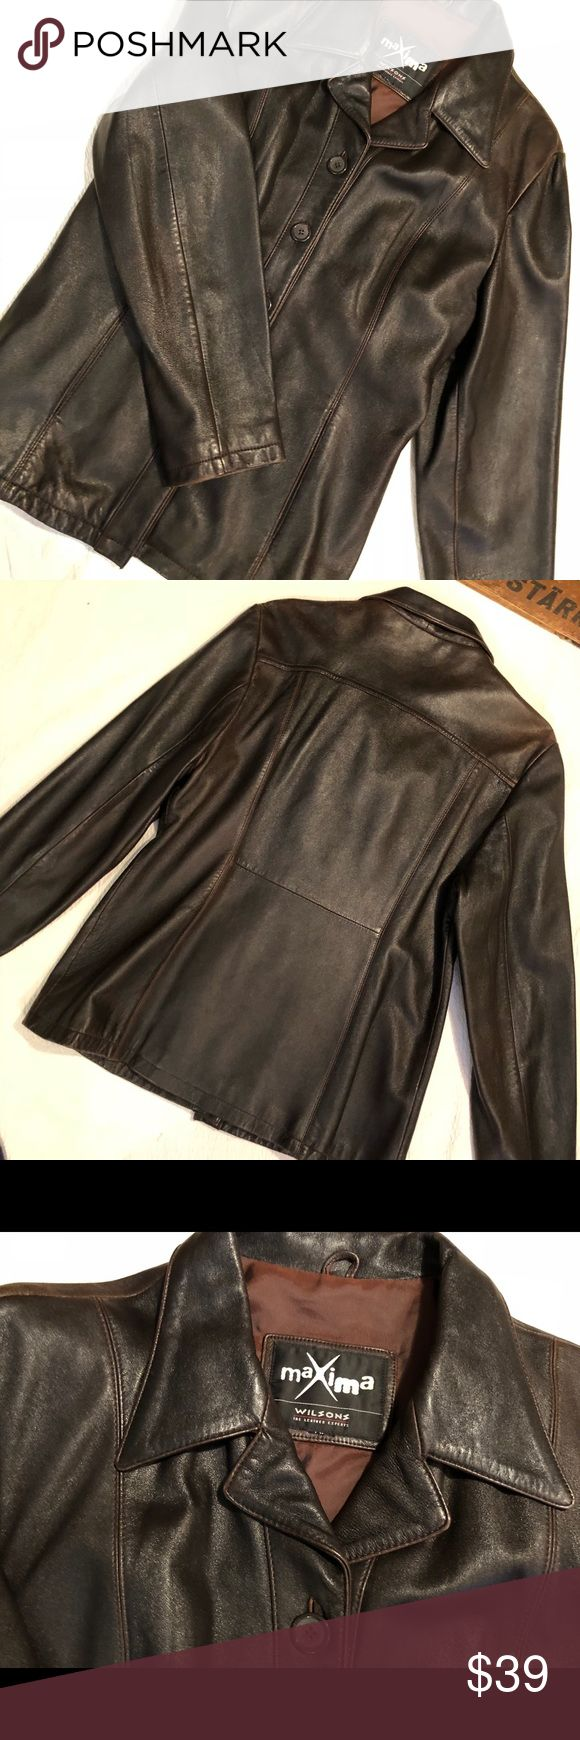 """Leather jacket Wilson's dark brn. Med. Lg. Gorgeous chocolate brown Wilson's leather jacket. Super soft , classic style will stand the test of time! Very good used condition, only minor distressing that adds to the beauty of this piece. Missing size tag I would say it is a medium large. Shoulder to shoulder 18"""" Underarm to underarm 19"""" length from top of collar to hem 29"""". Please check your measurements. Wilsons Leather Jackets & Coats"""